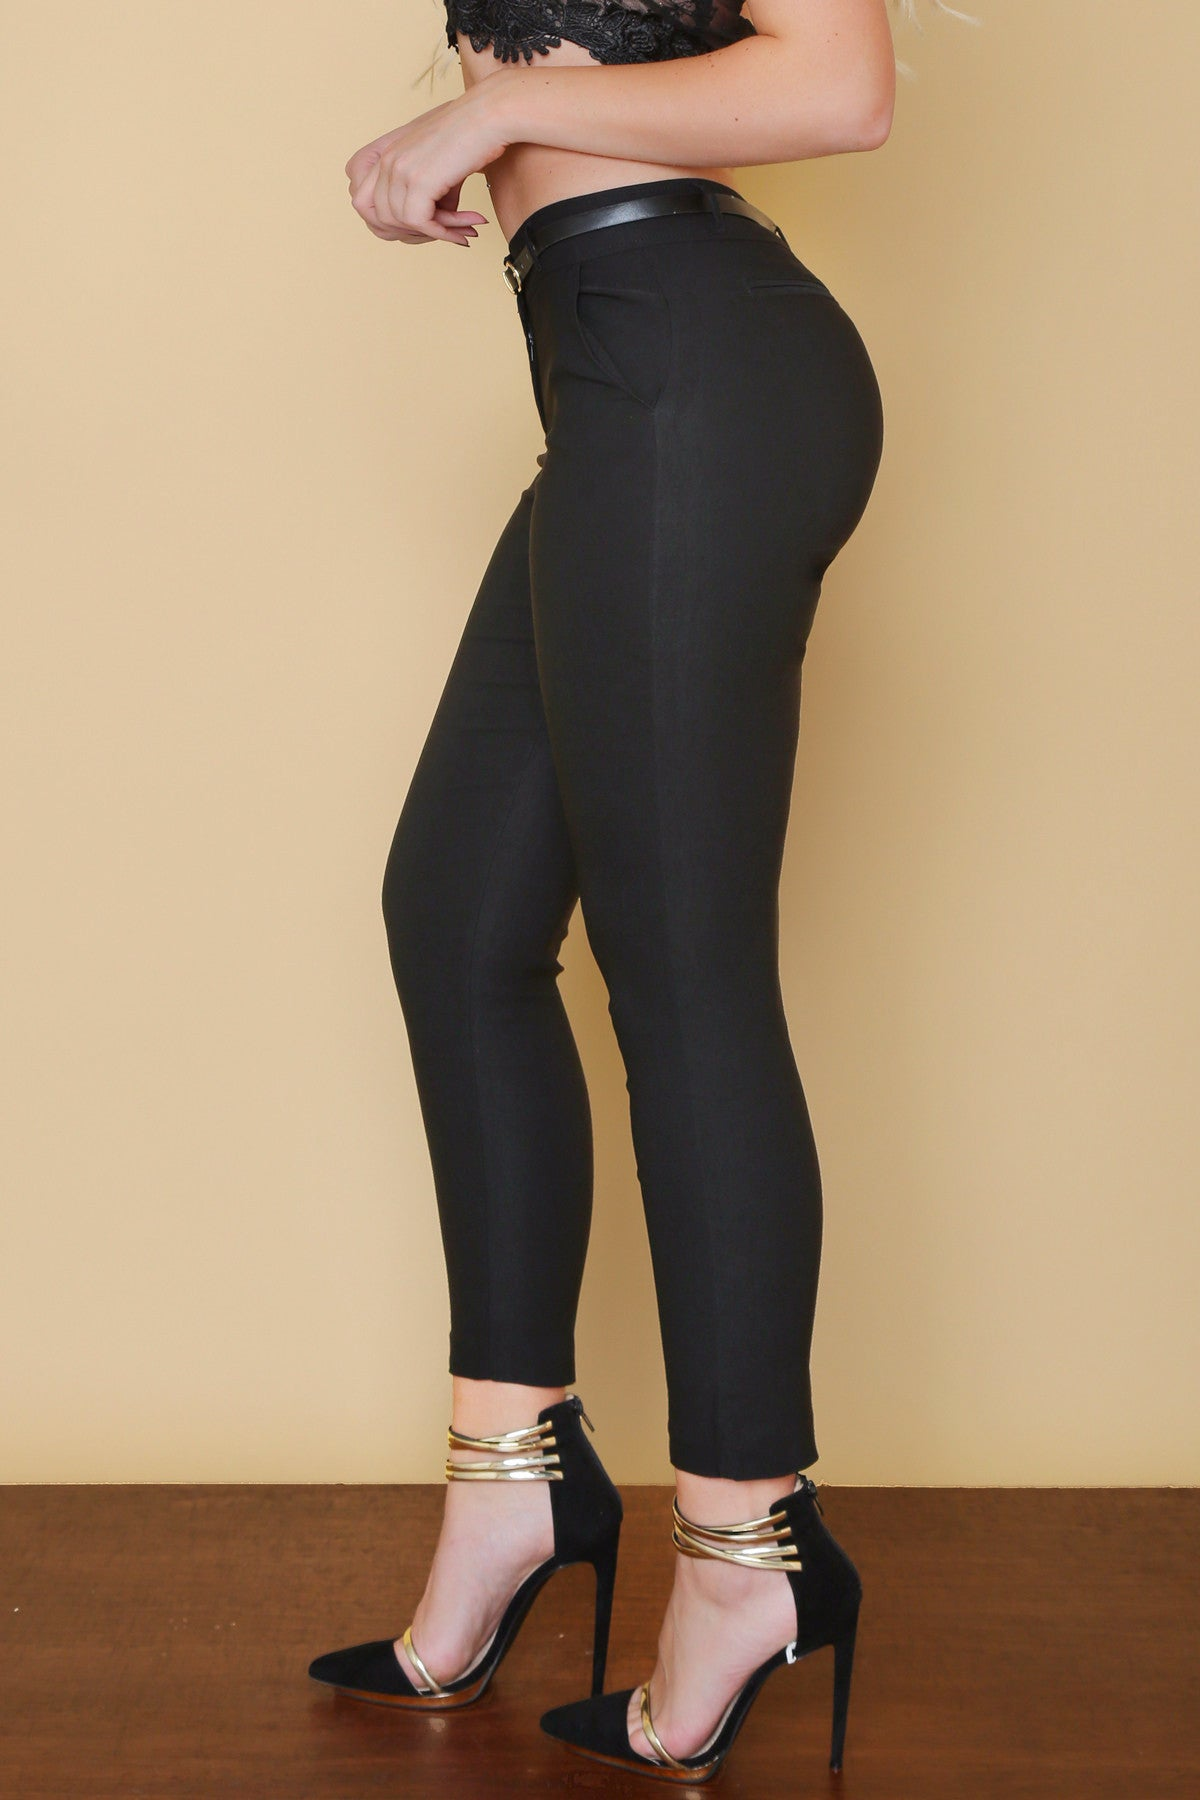 RESTOCK Get Down To Business Pants BLACK - Fashion Effect Store  - 3